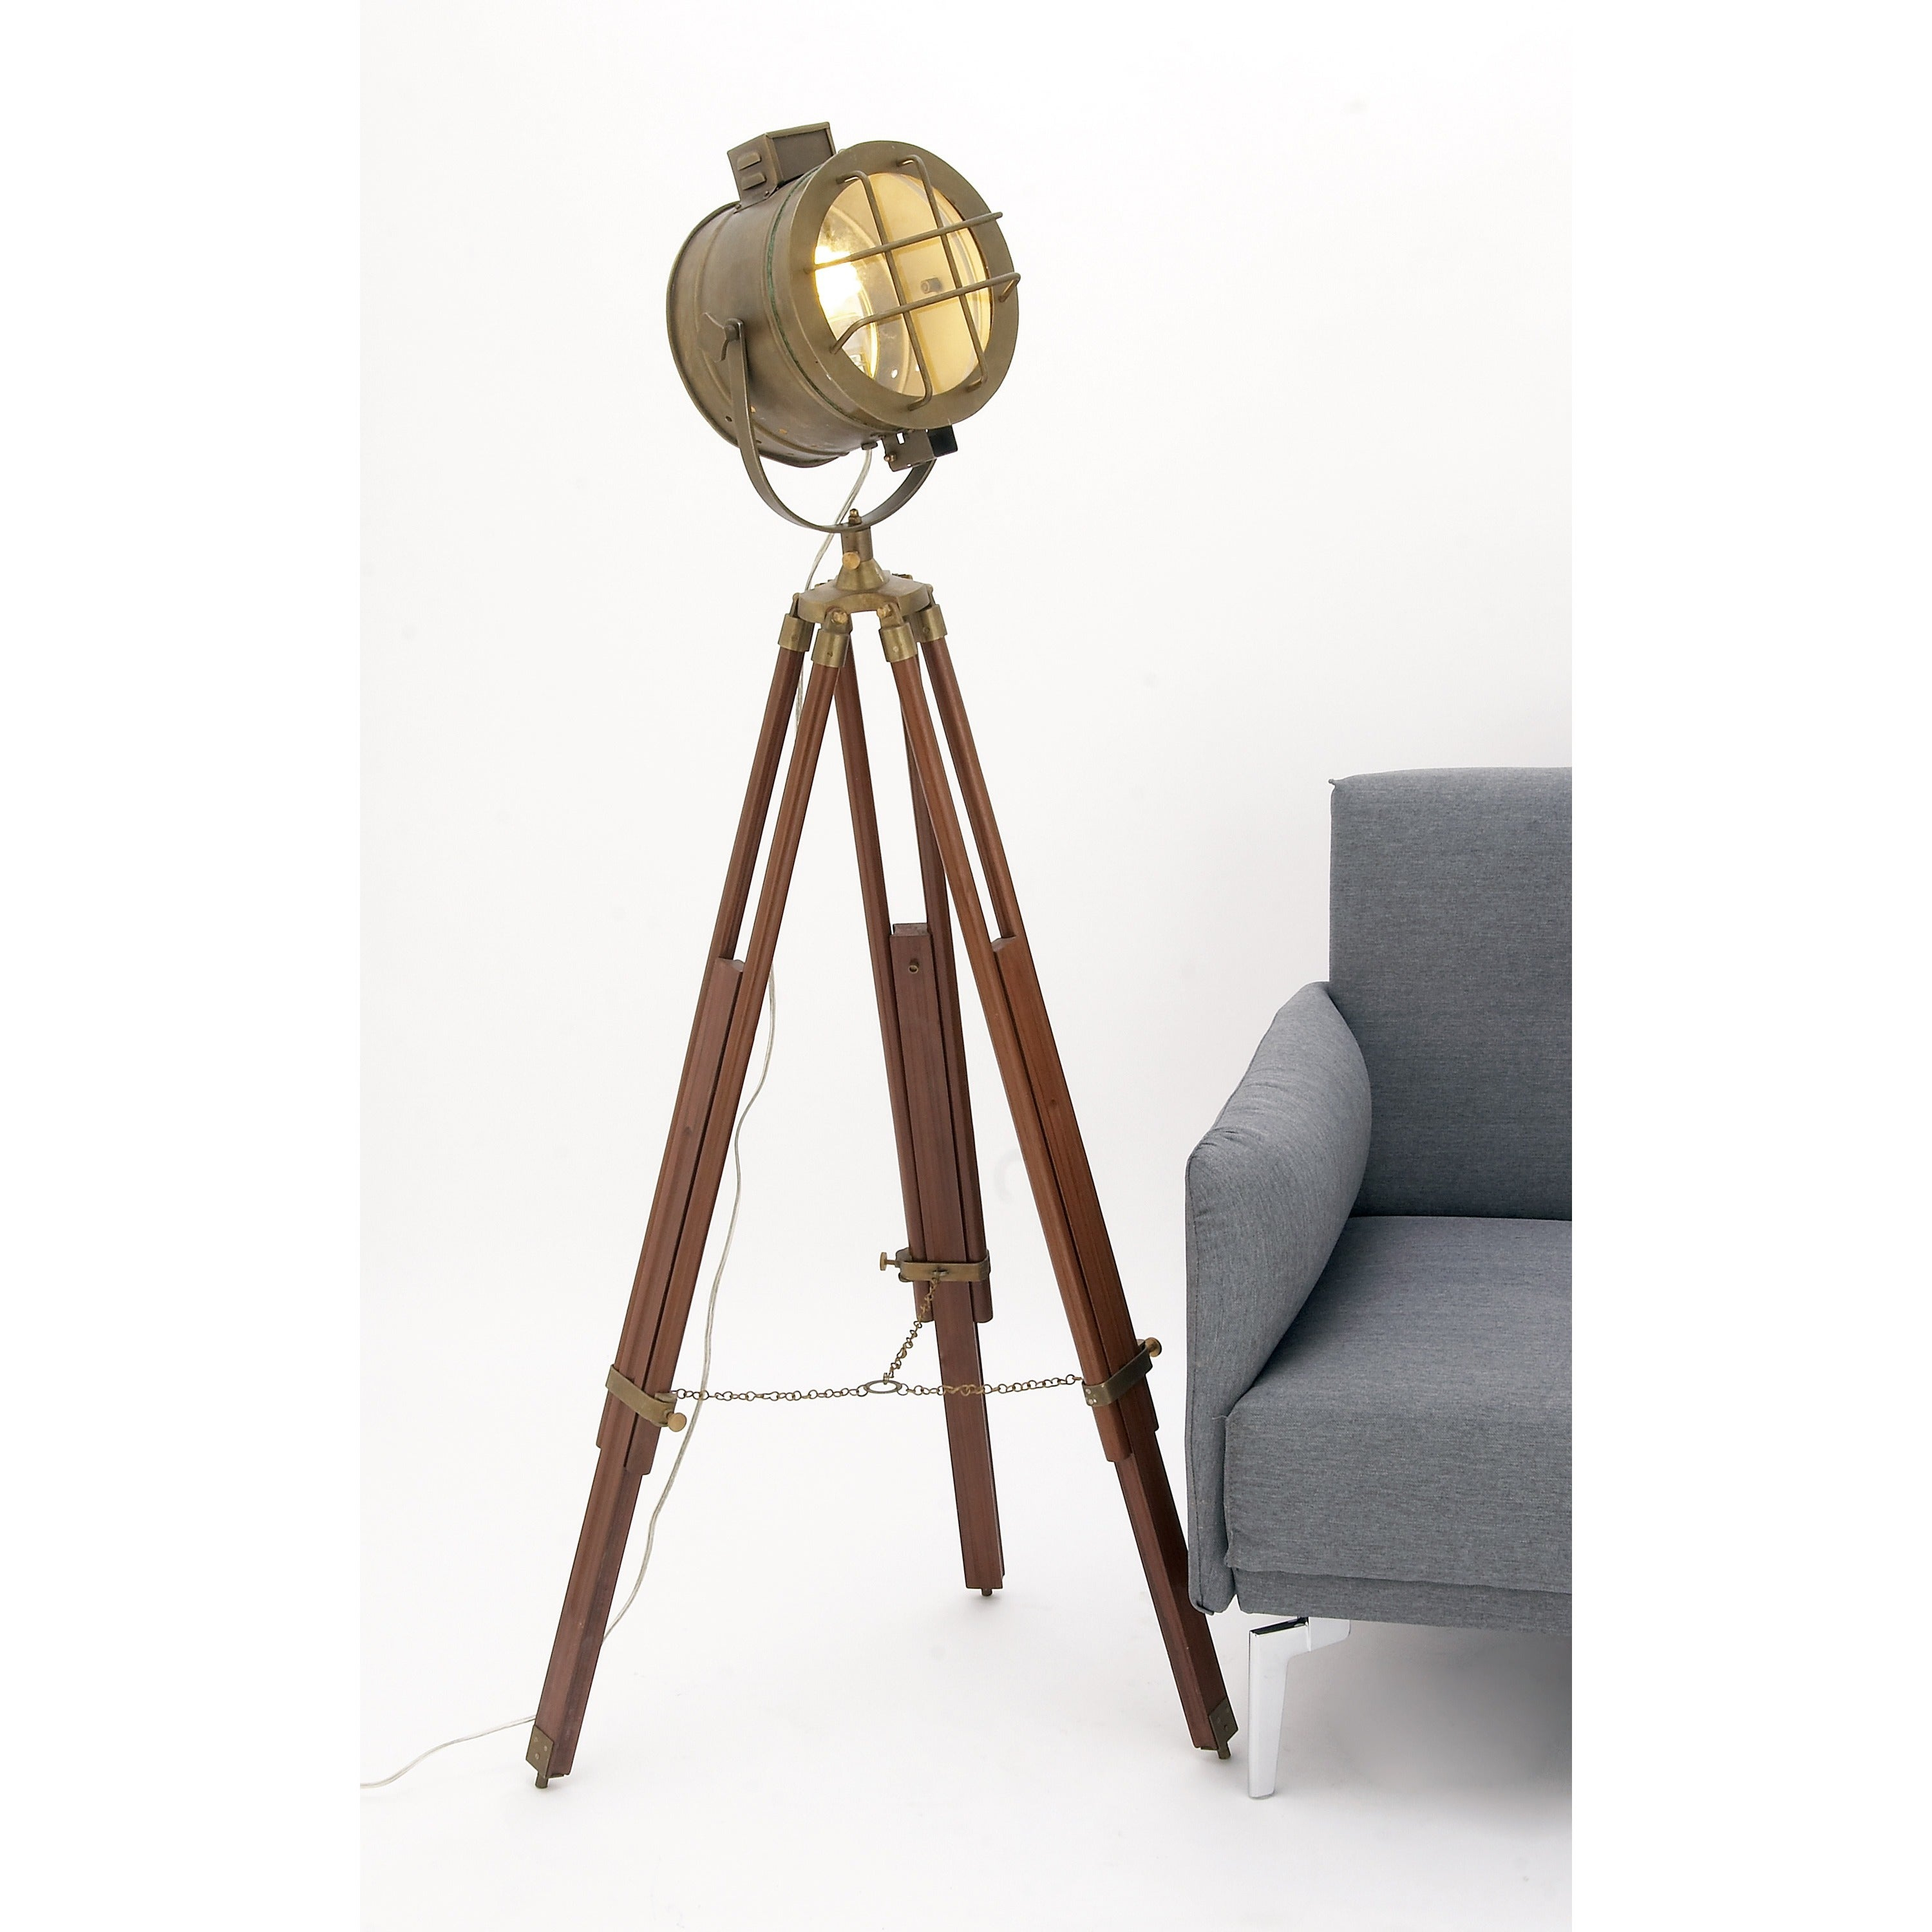 Cinema Studio Prop Light With Tripod Adjustable Floor Lamp pertaining to sizing 3000 X 3000